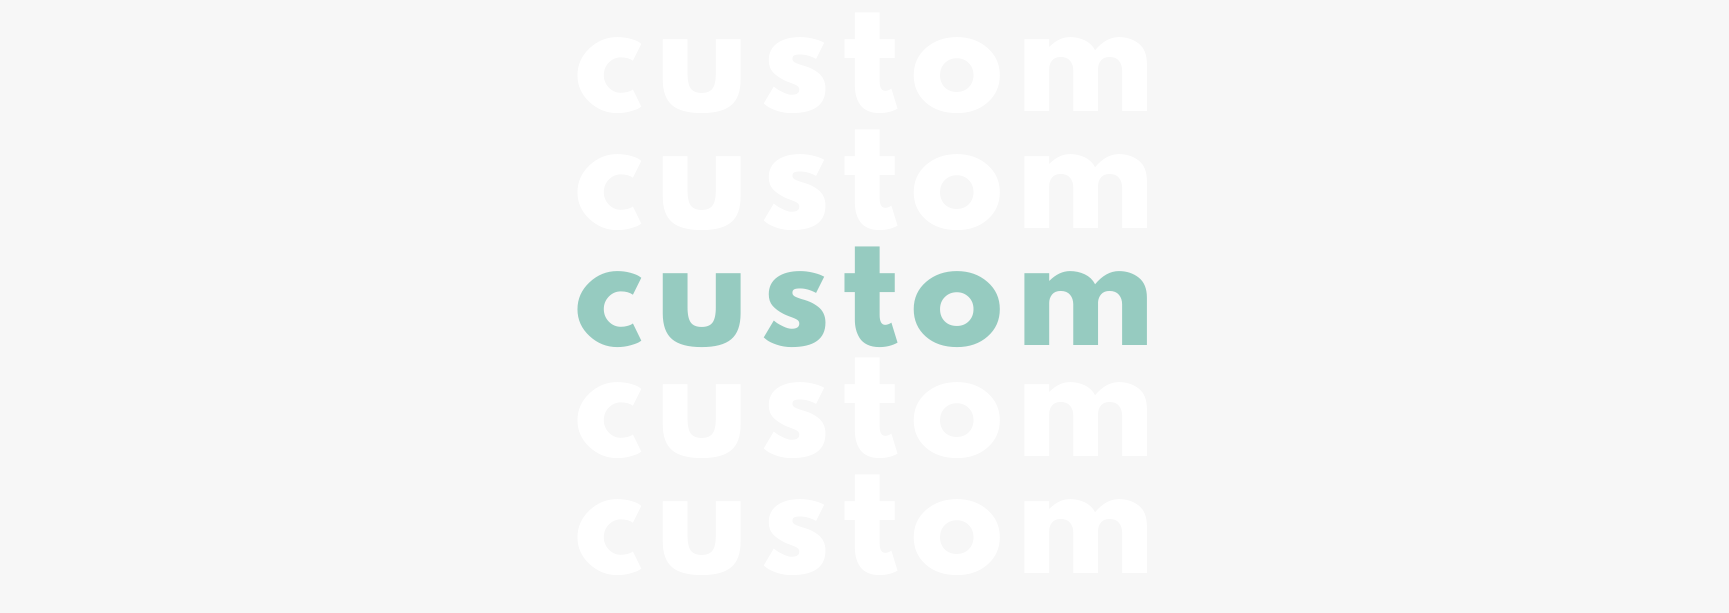 Meaning of Custom?